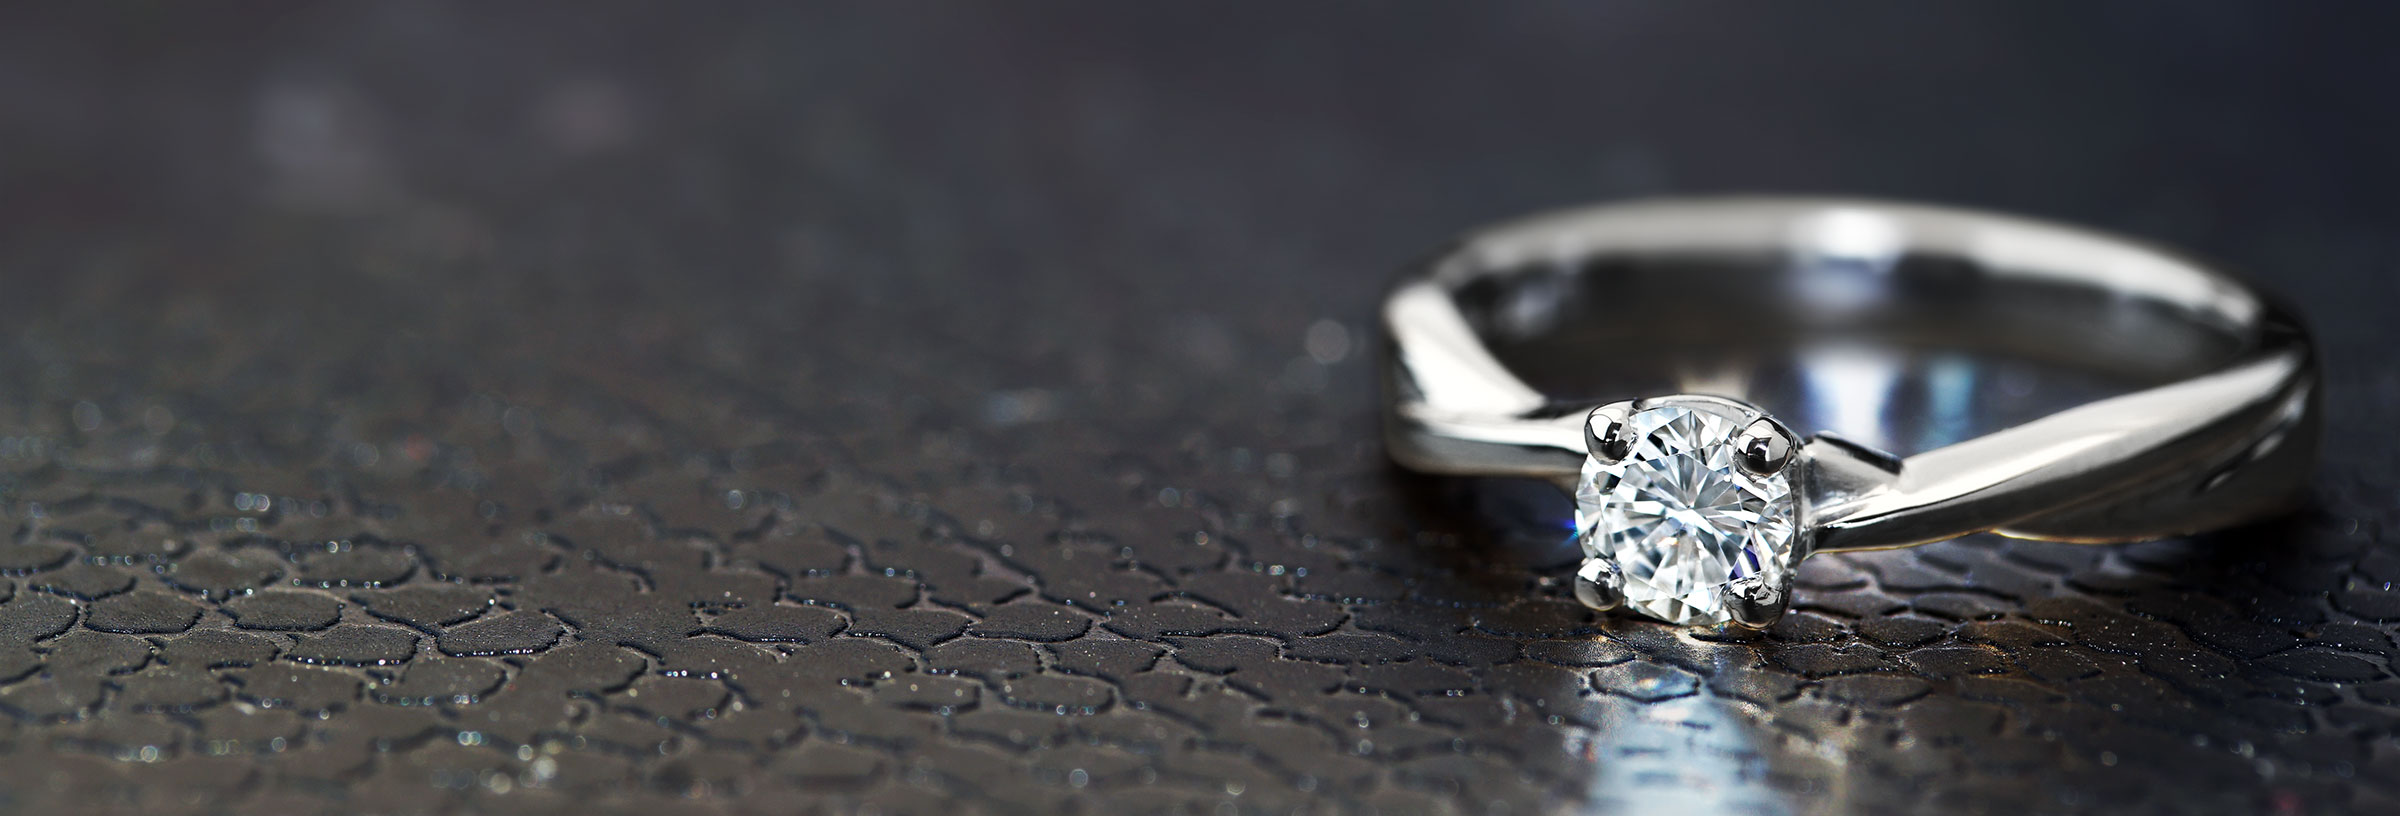 Mobius twist inspired 18 carat white gold and 0.35ct diamond engagement ring